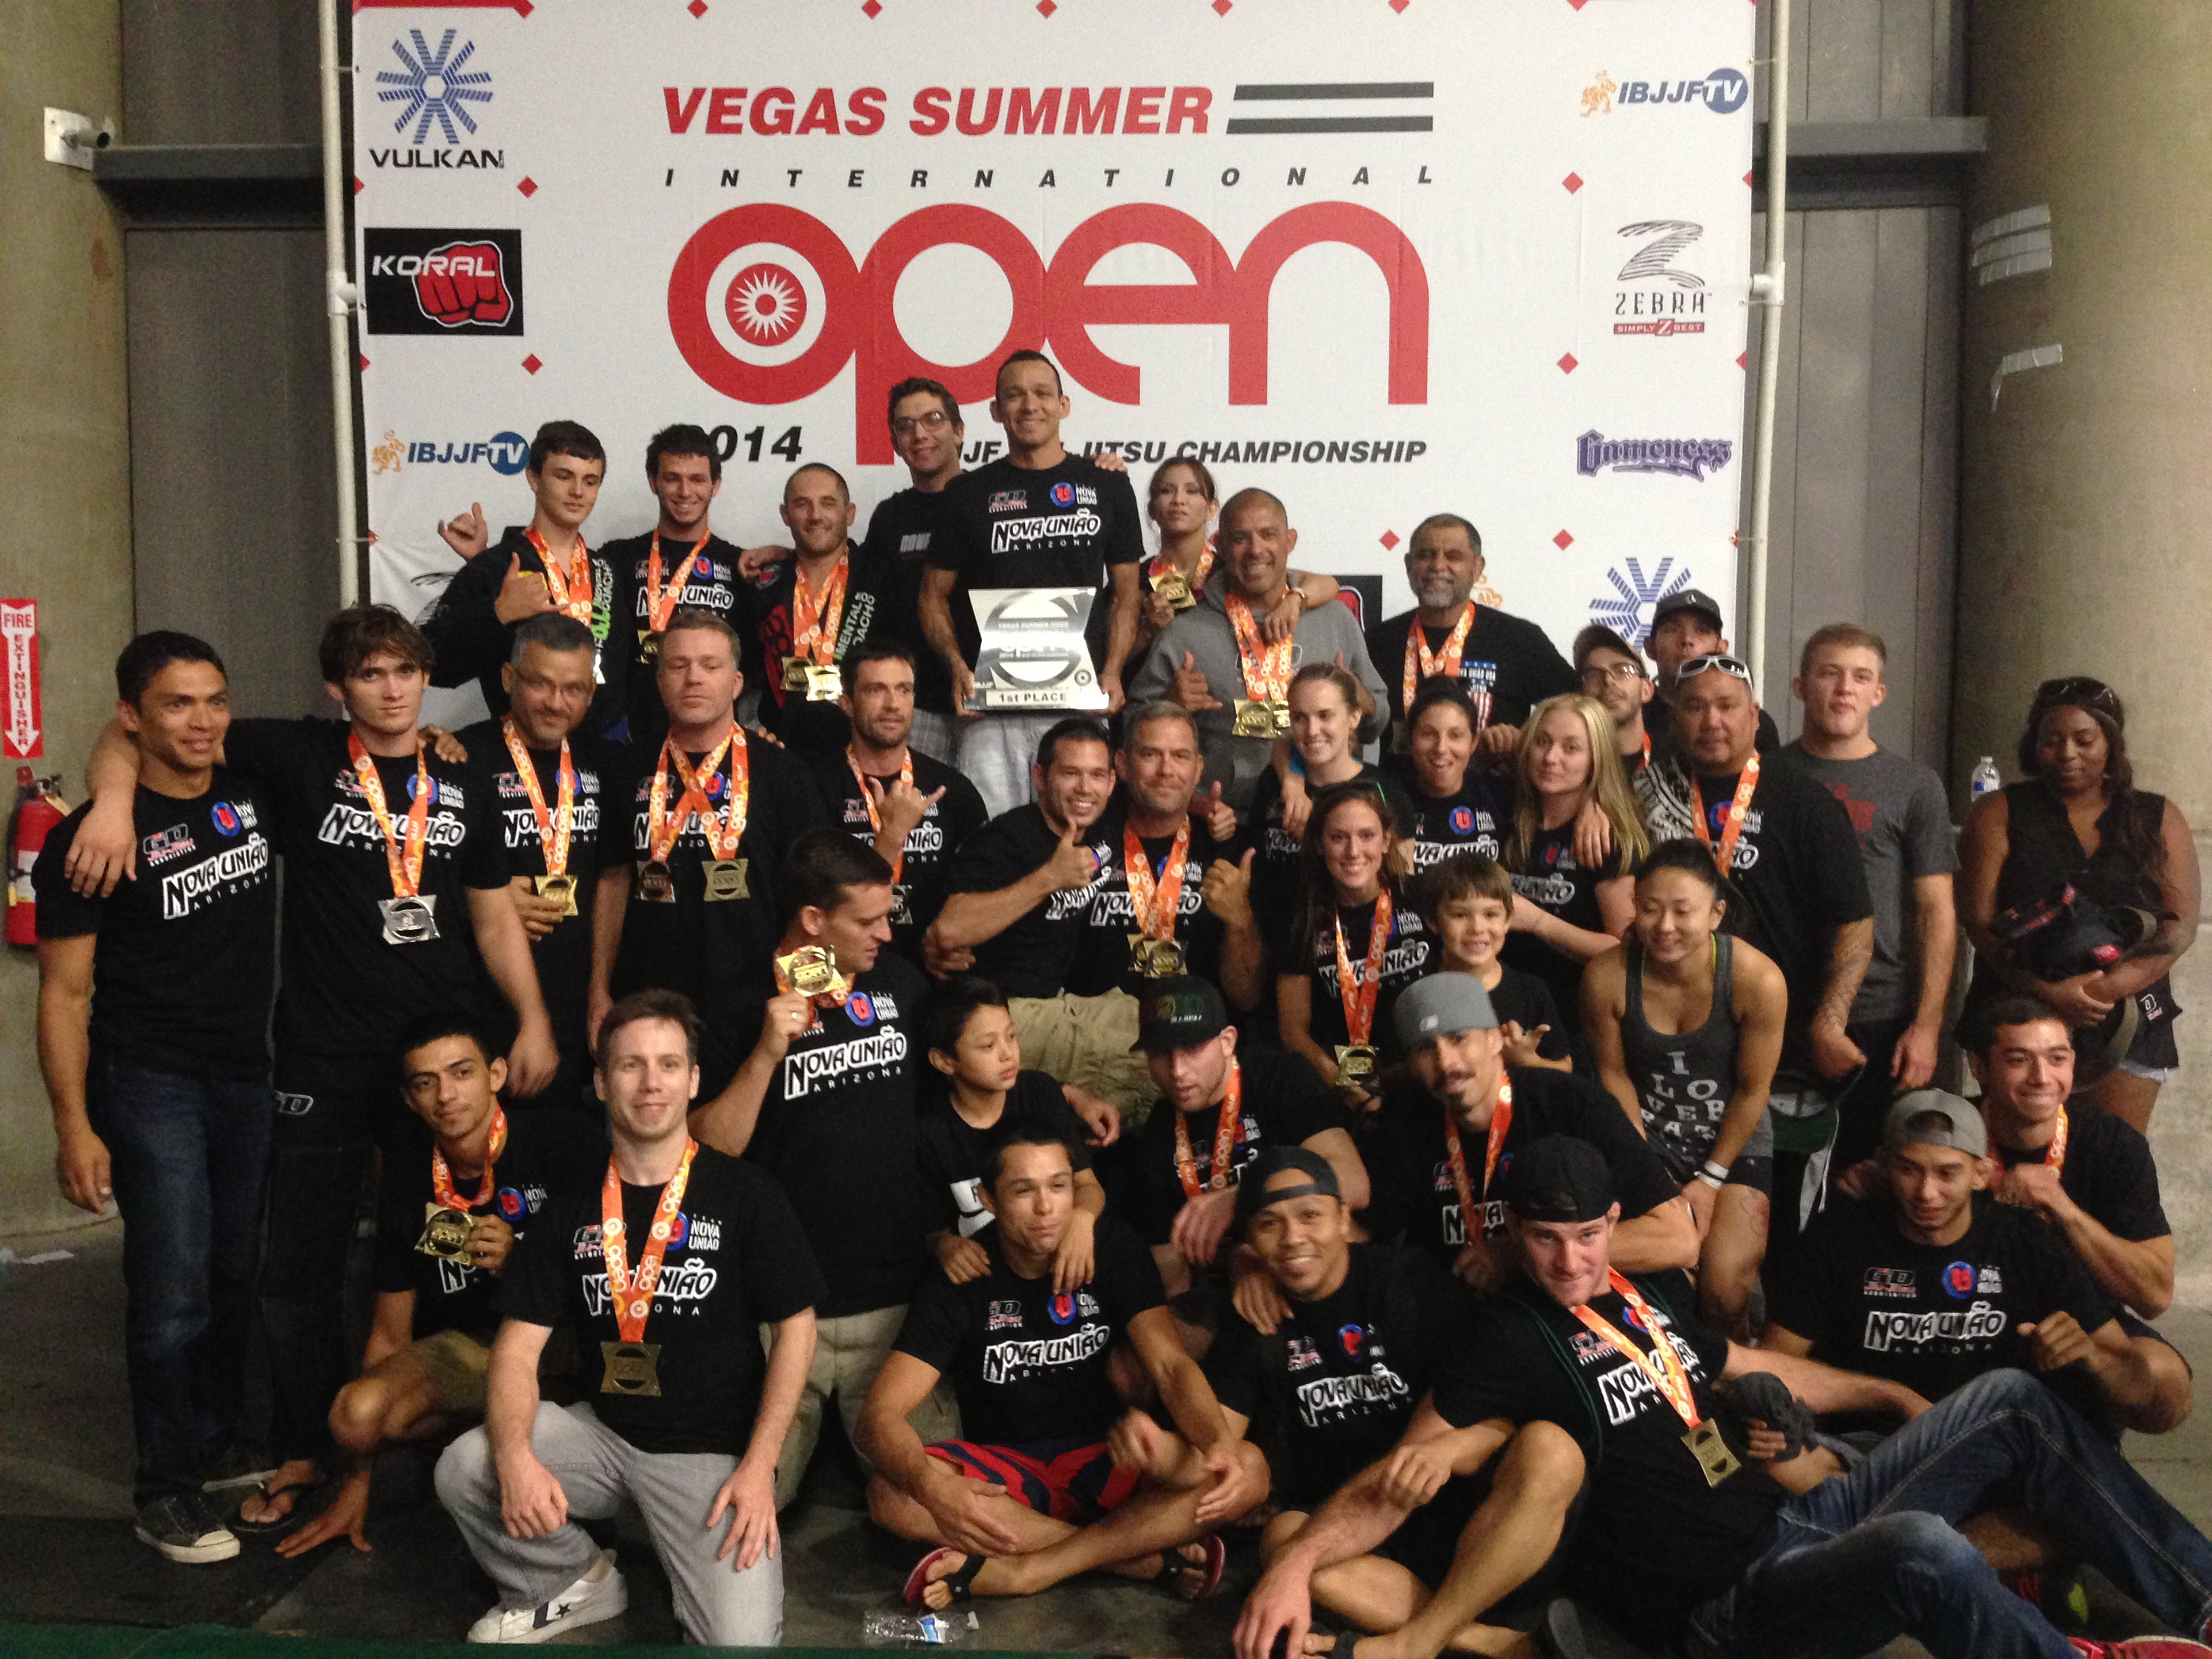 The Nova Uniao team takes first at the 2014 IBJJF Vegas Summer Open. Photo: Personal Archive